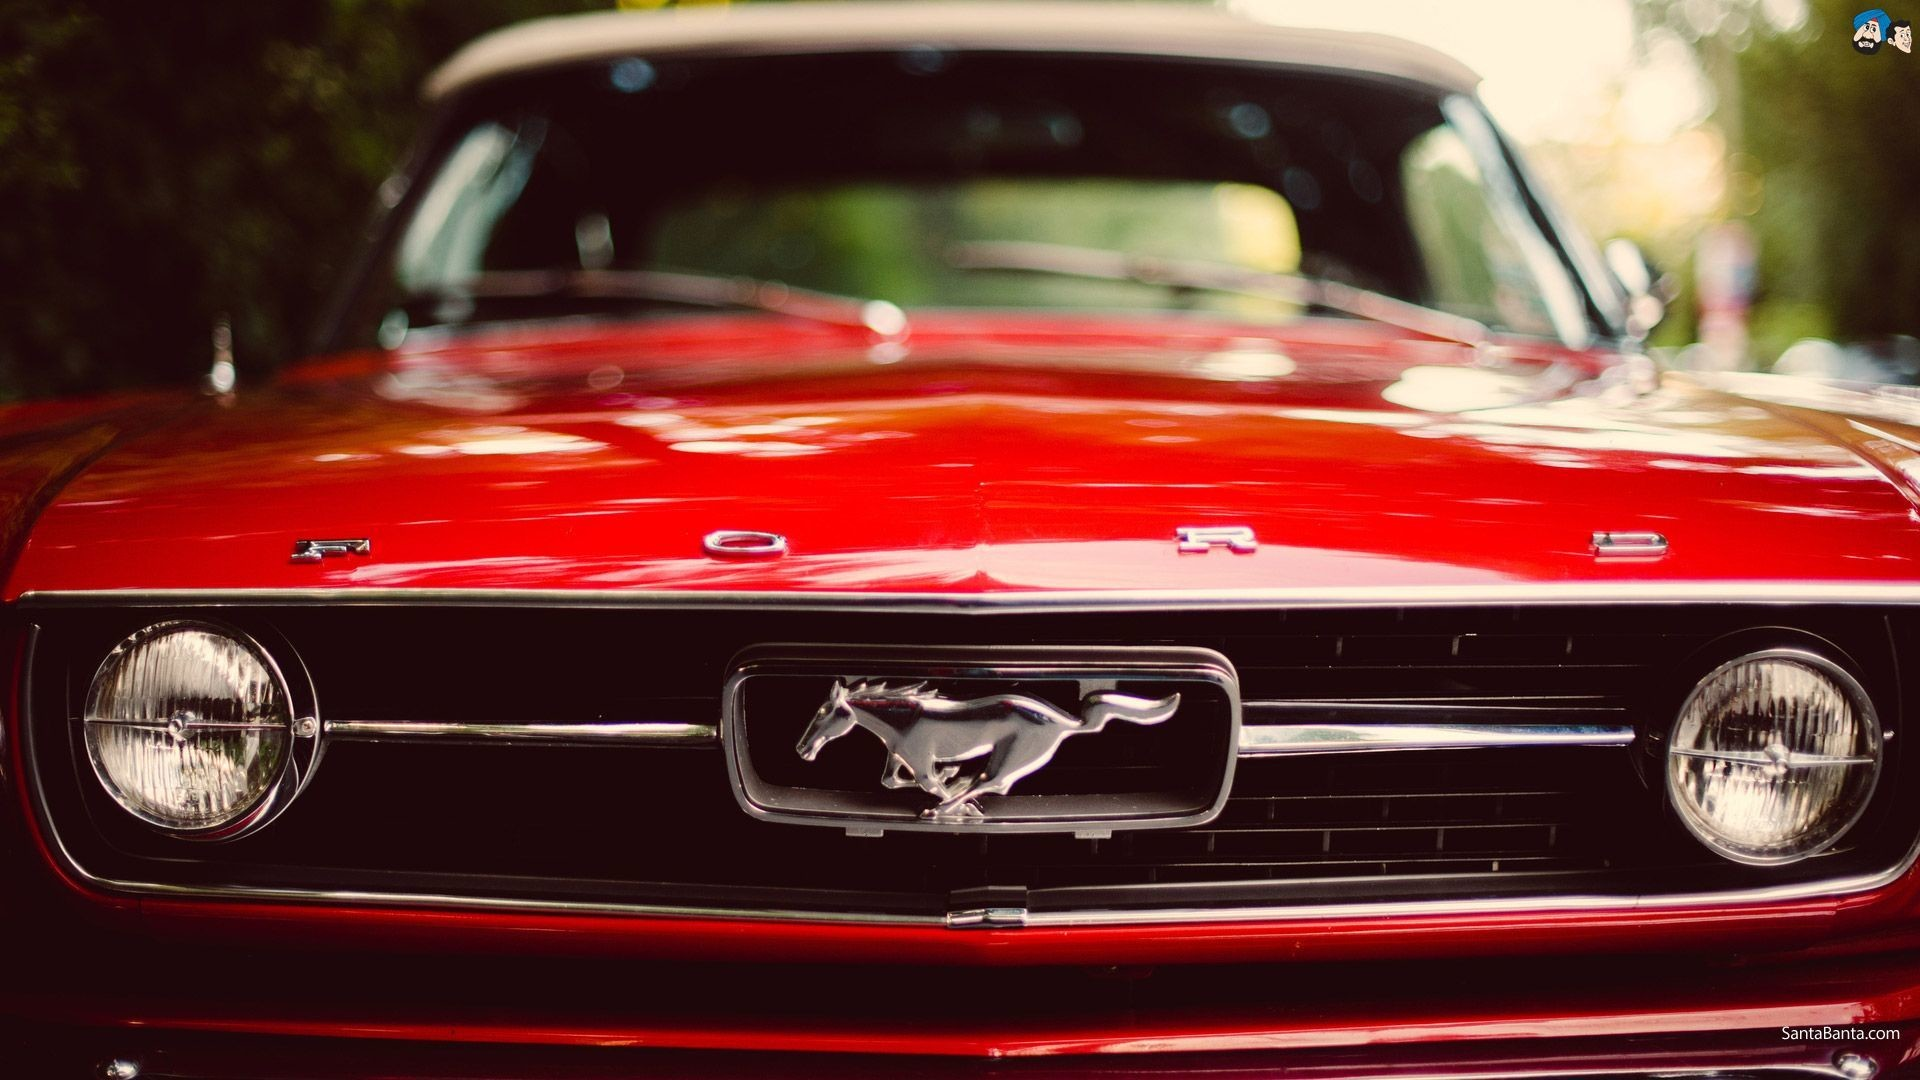 Ford Mustang Wallpapers Wallpaper